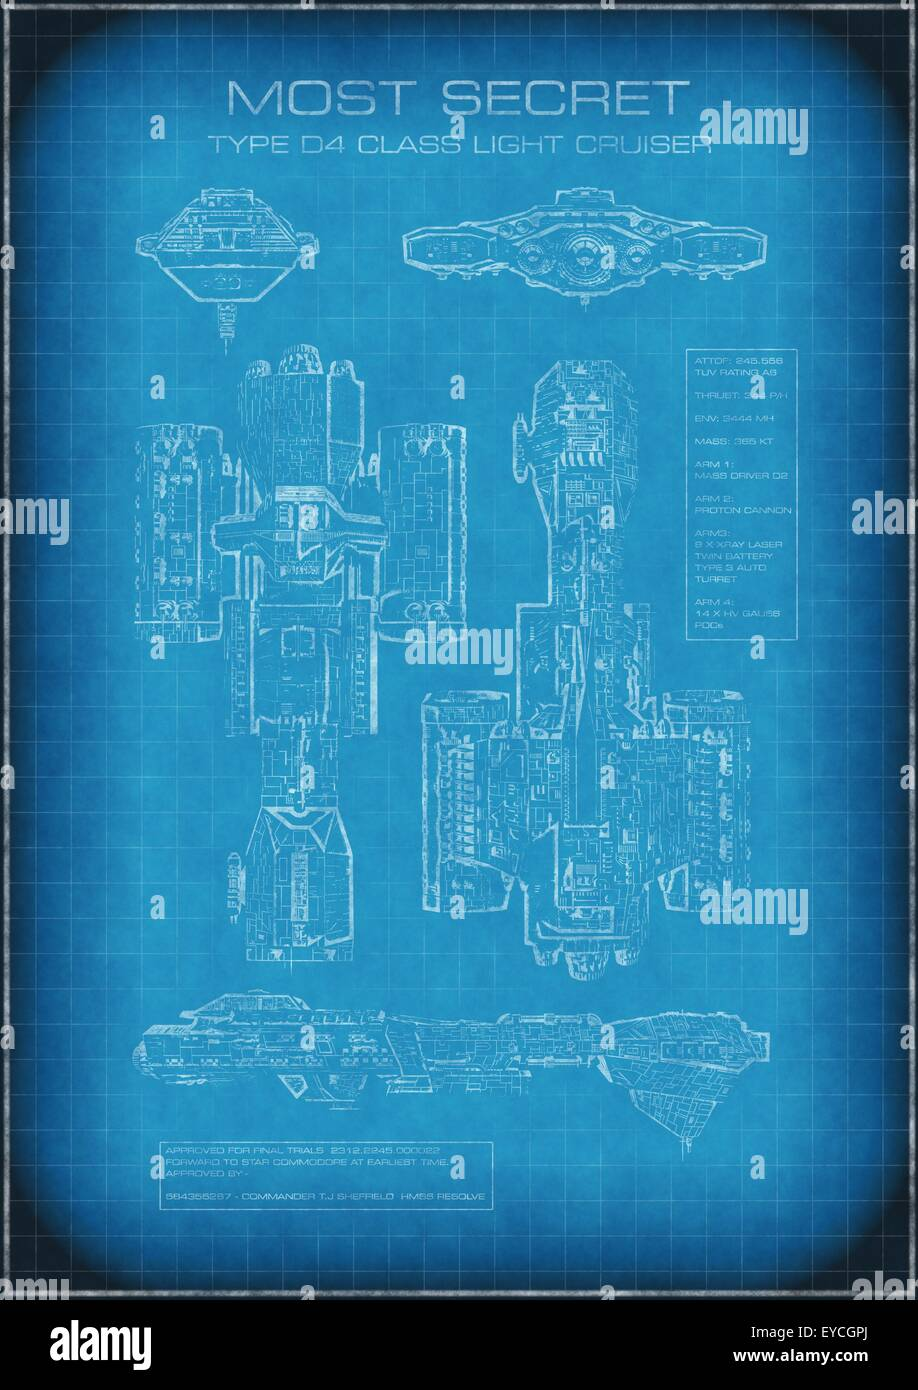 Top secret spaceship blueprint with text stock photo royalty free top secret spaceship blueprint with text malvernweather Image collections